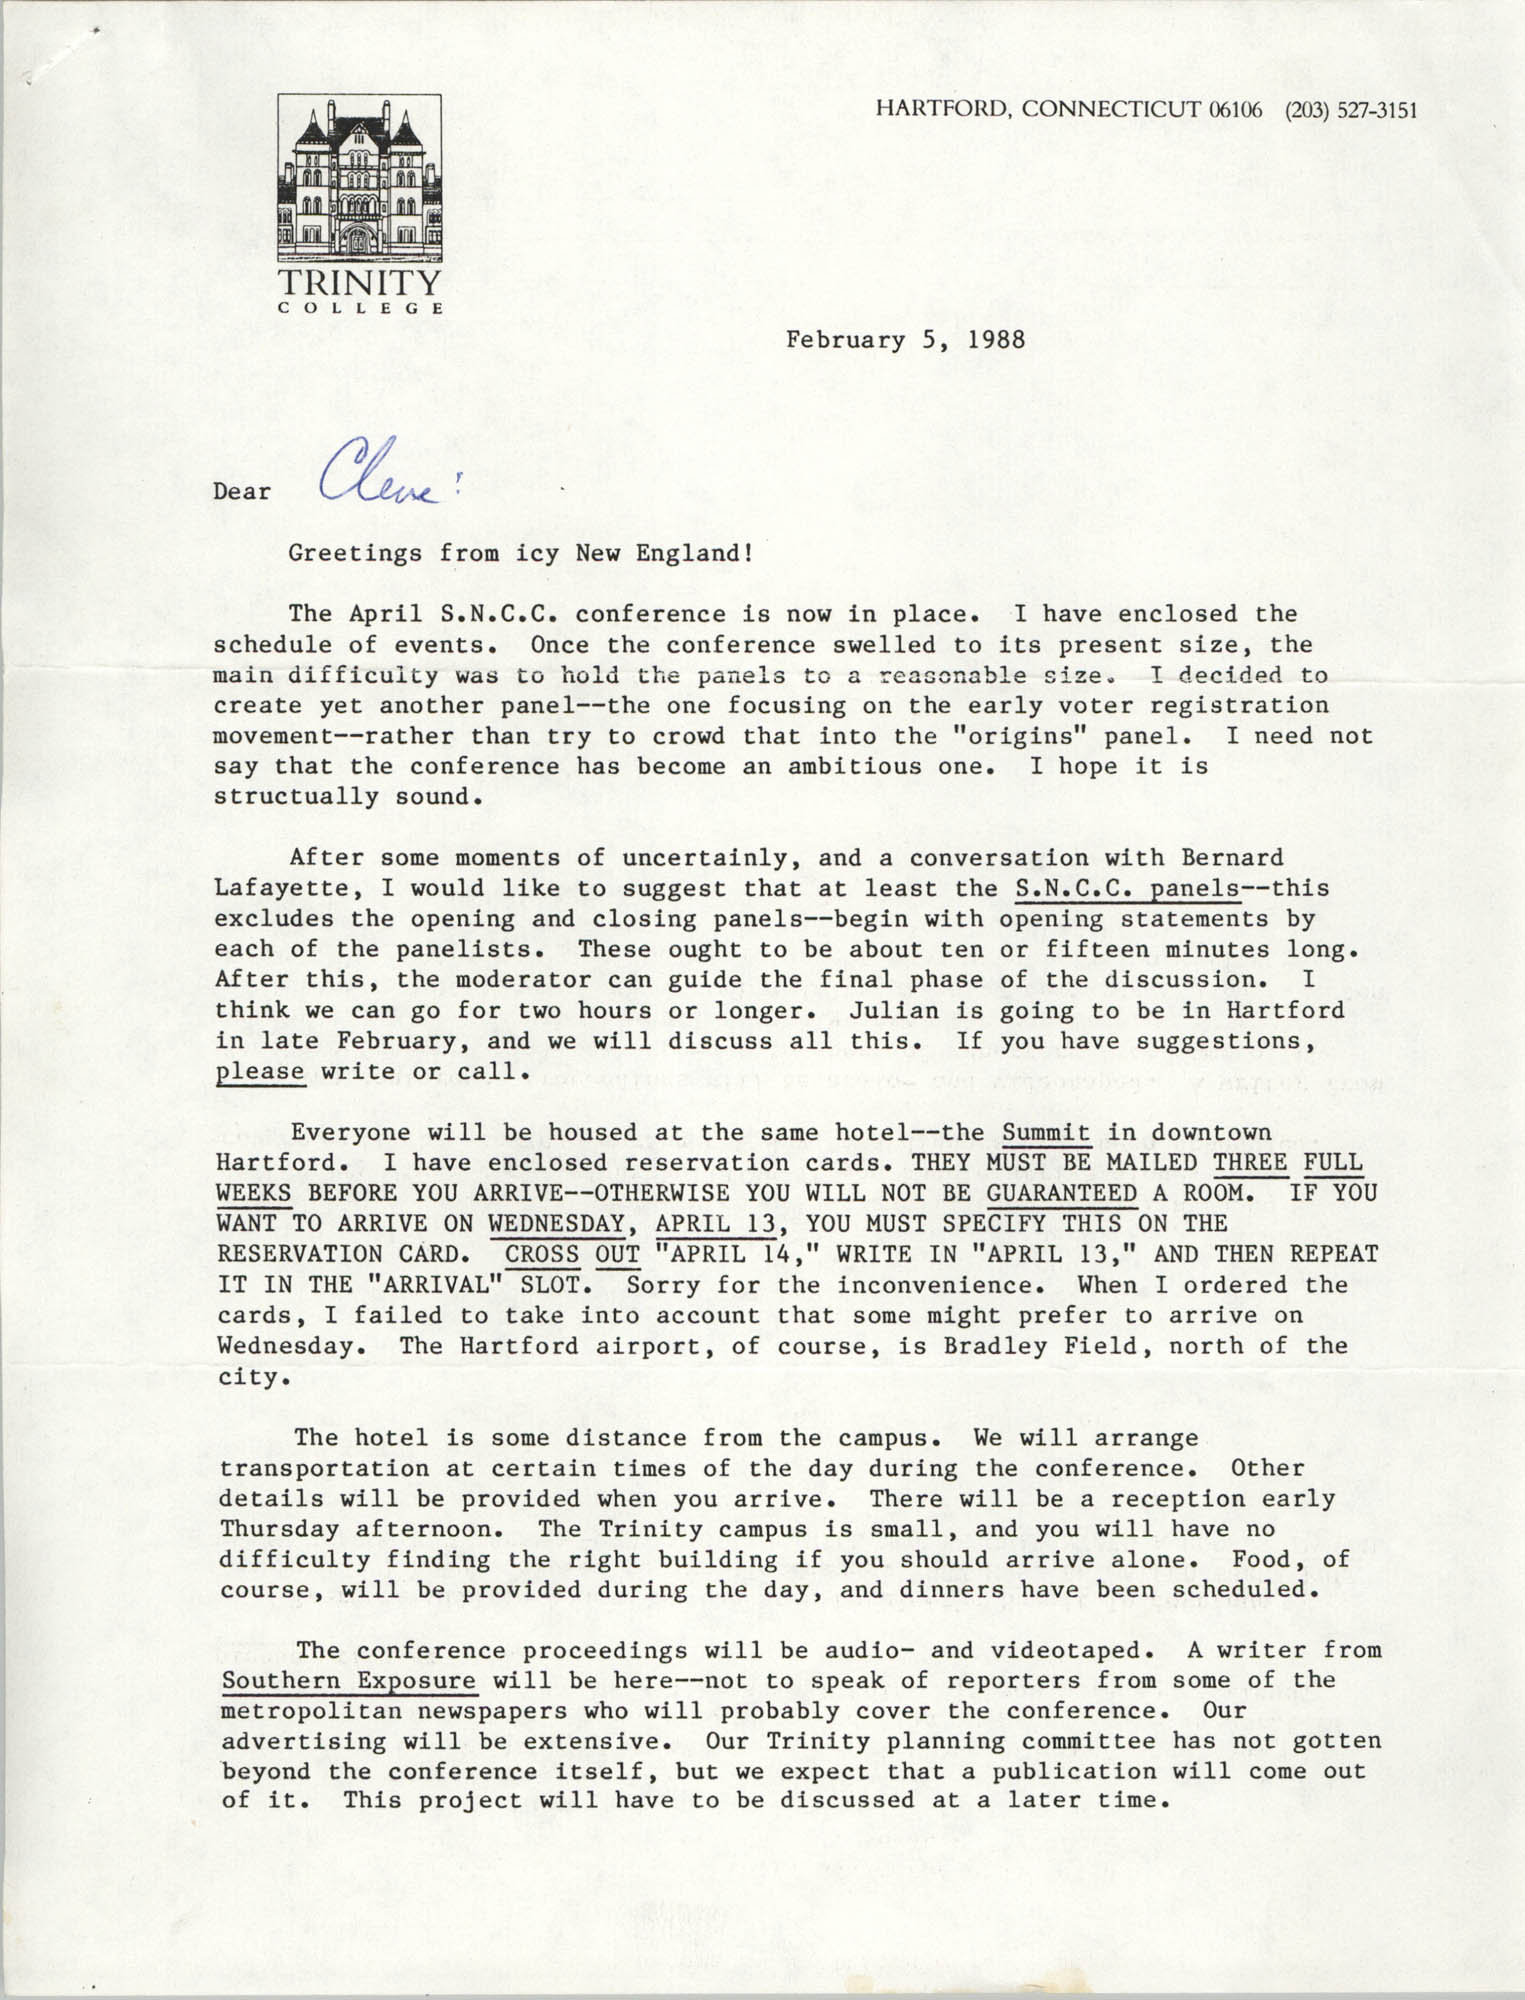 Letter from Jack Chatfield to Cleveland Sellers, February 5, 1988